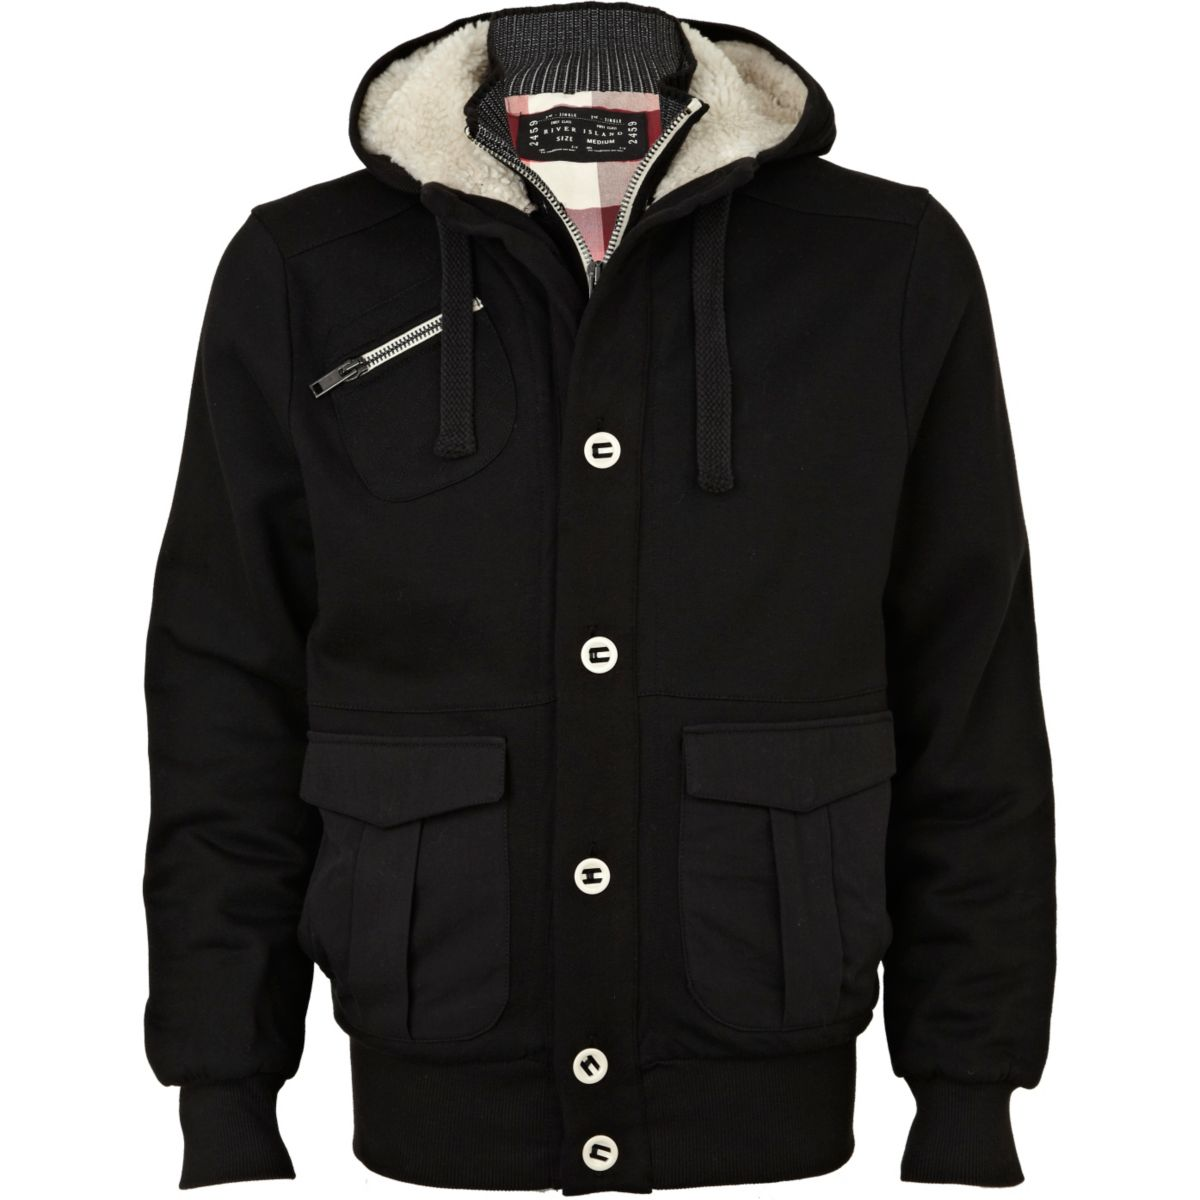 Black fleece lined sweatshirt jacket